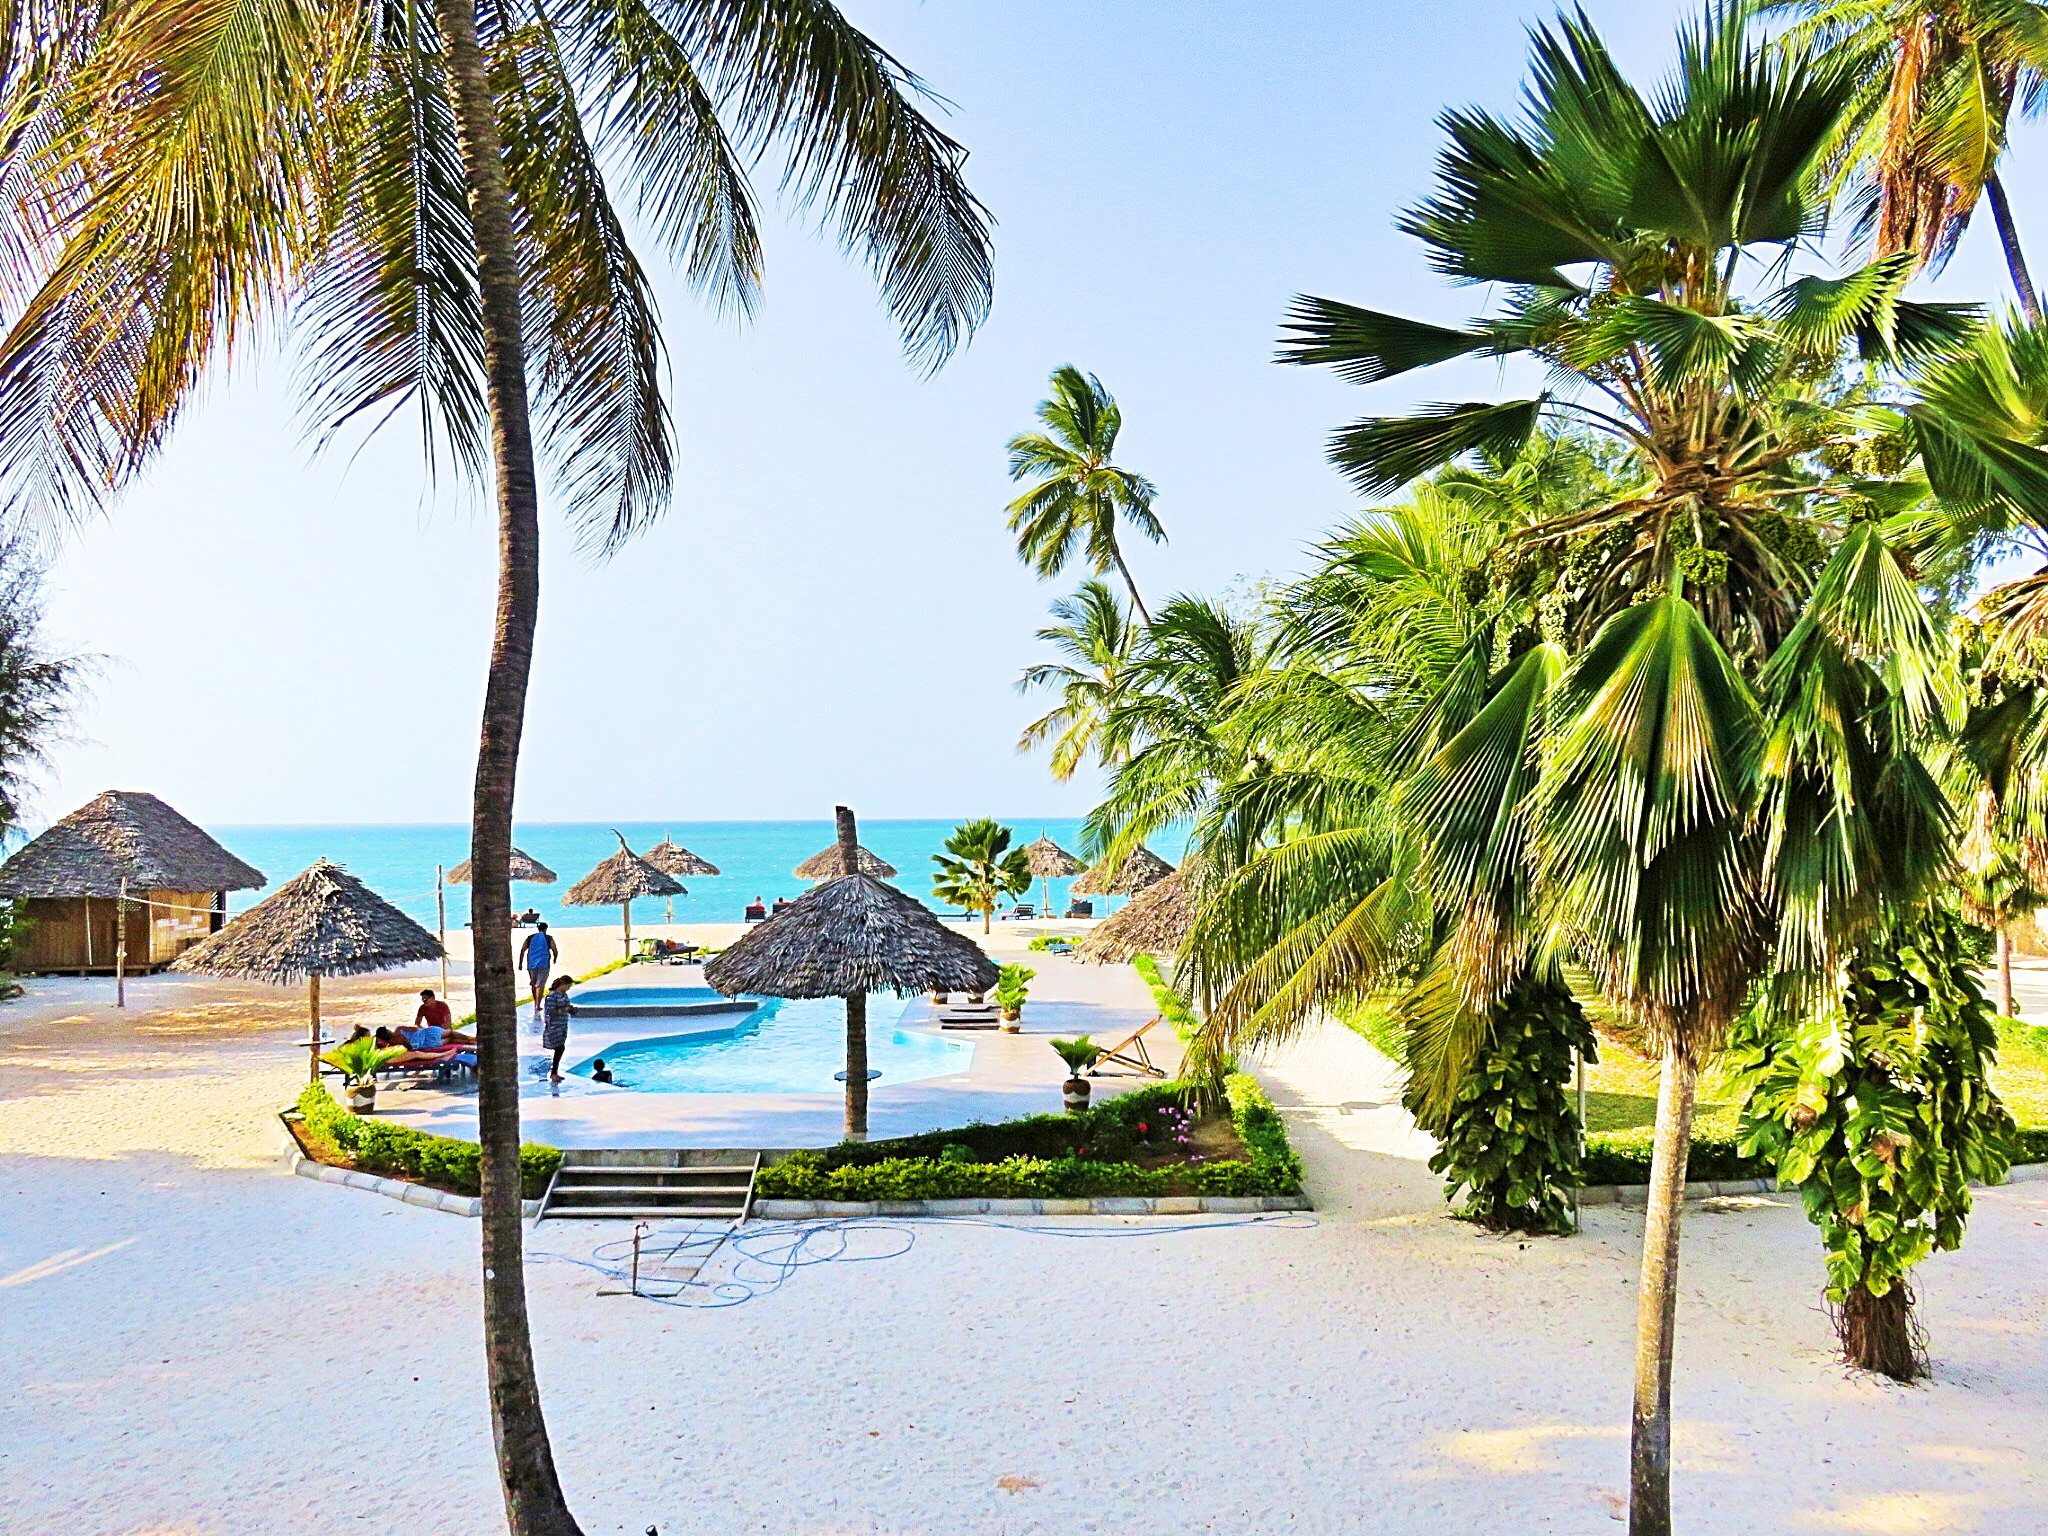 A picure of the pool and sea at the Smiles beach hotel